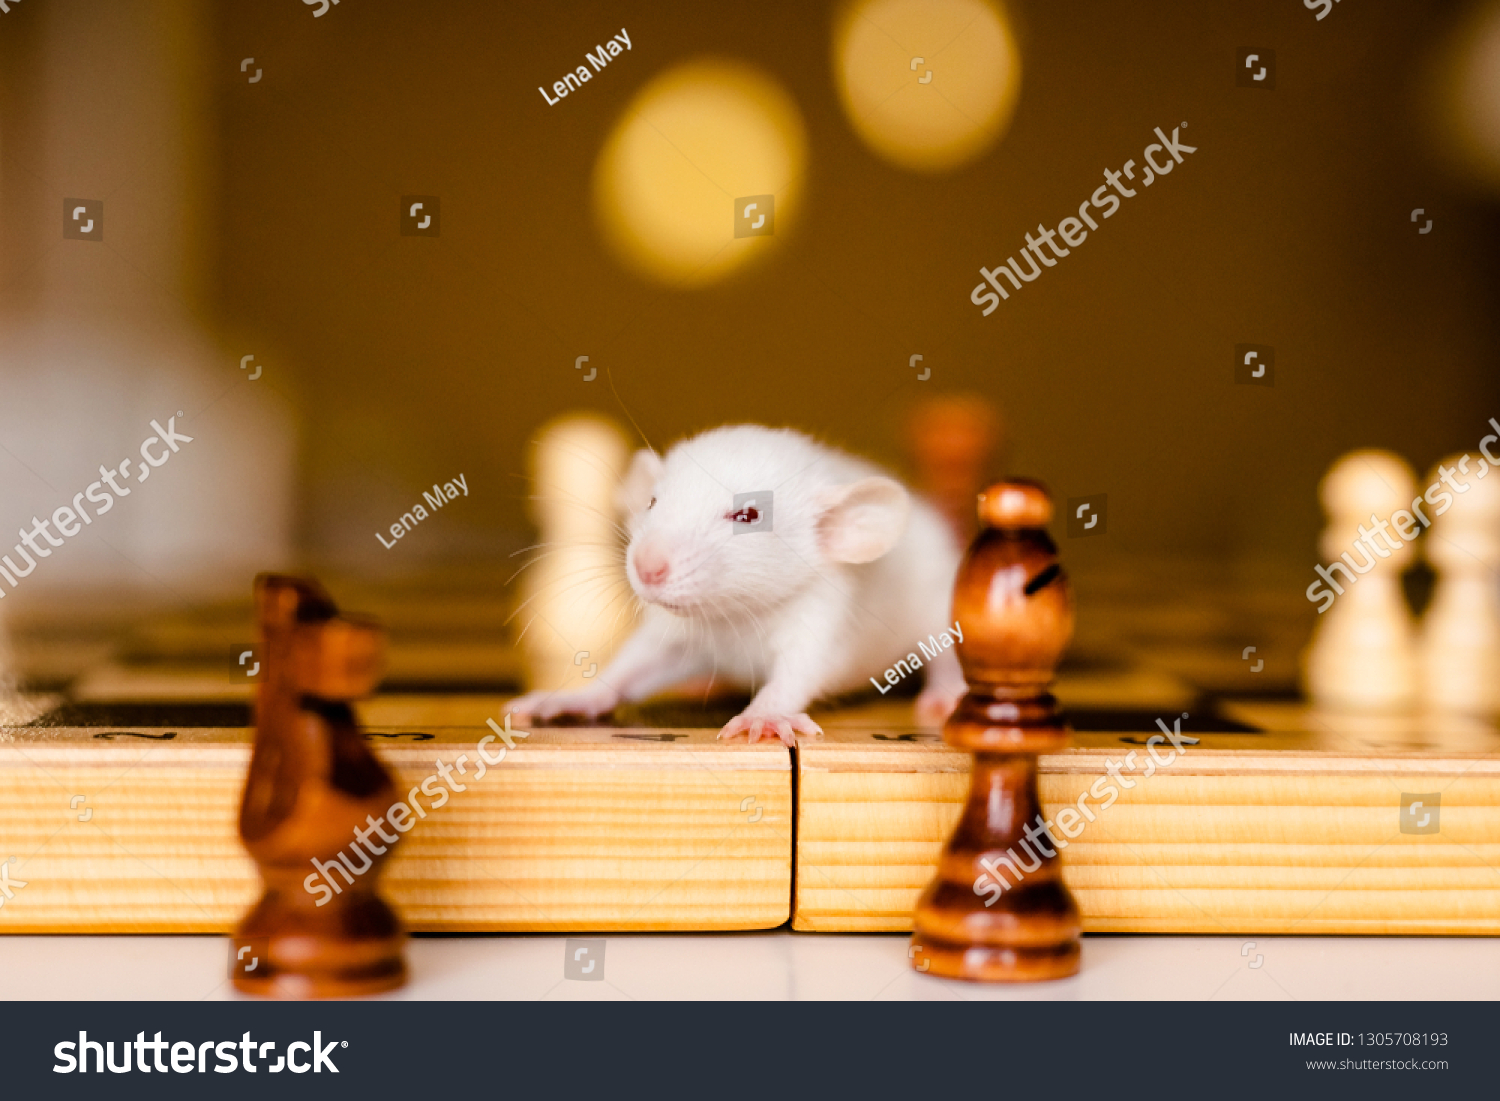 Cute little white rat with big ears siting on the chess board on the warm yellow background. #1305708193